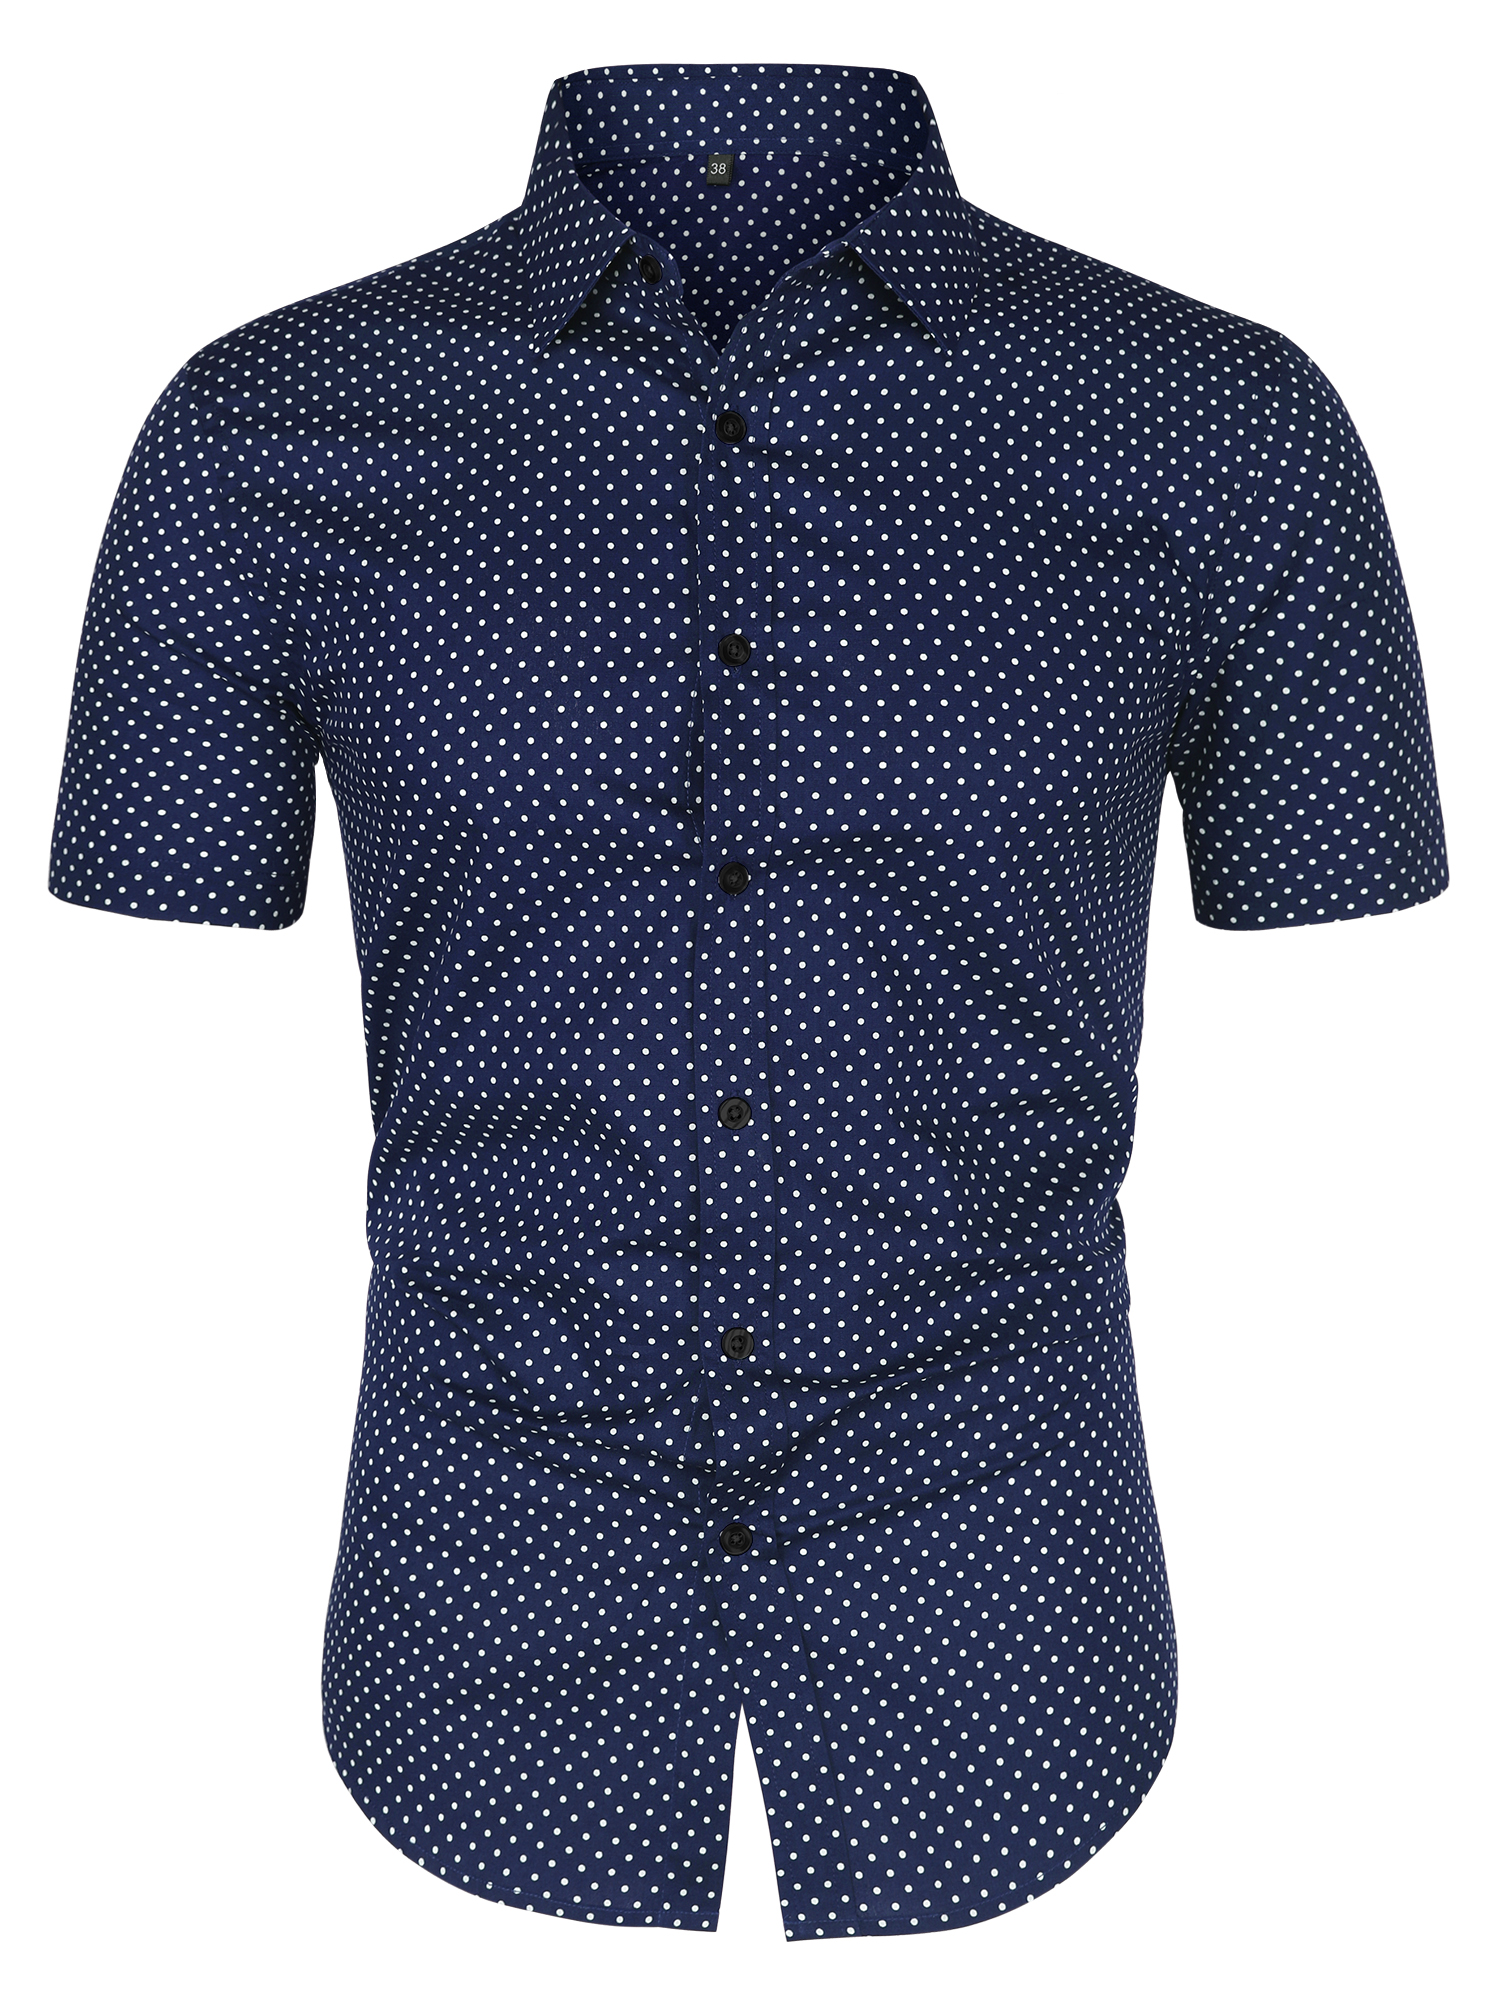 Men Short Sleeves Button Up Cotton Polka Dots Shirt Blue S